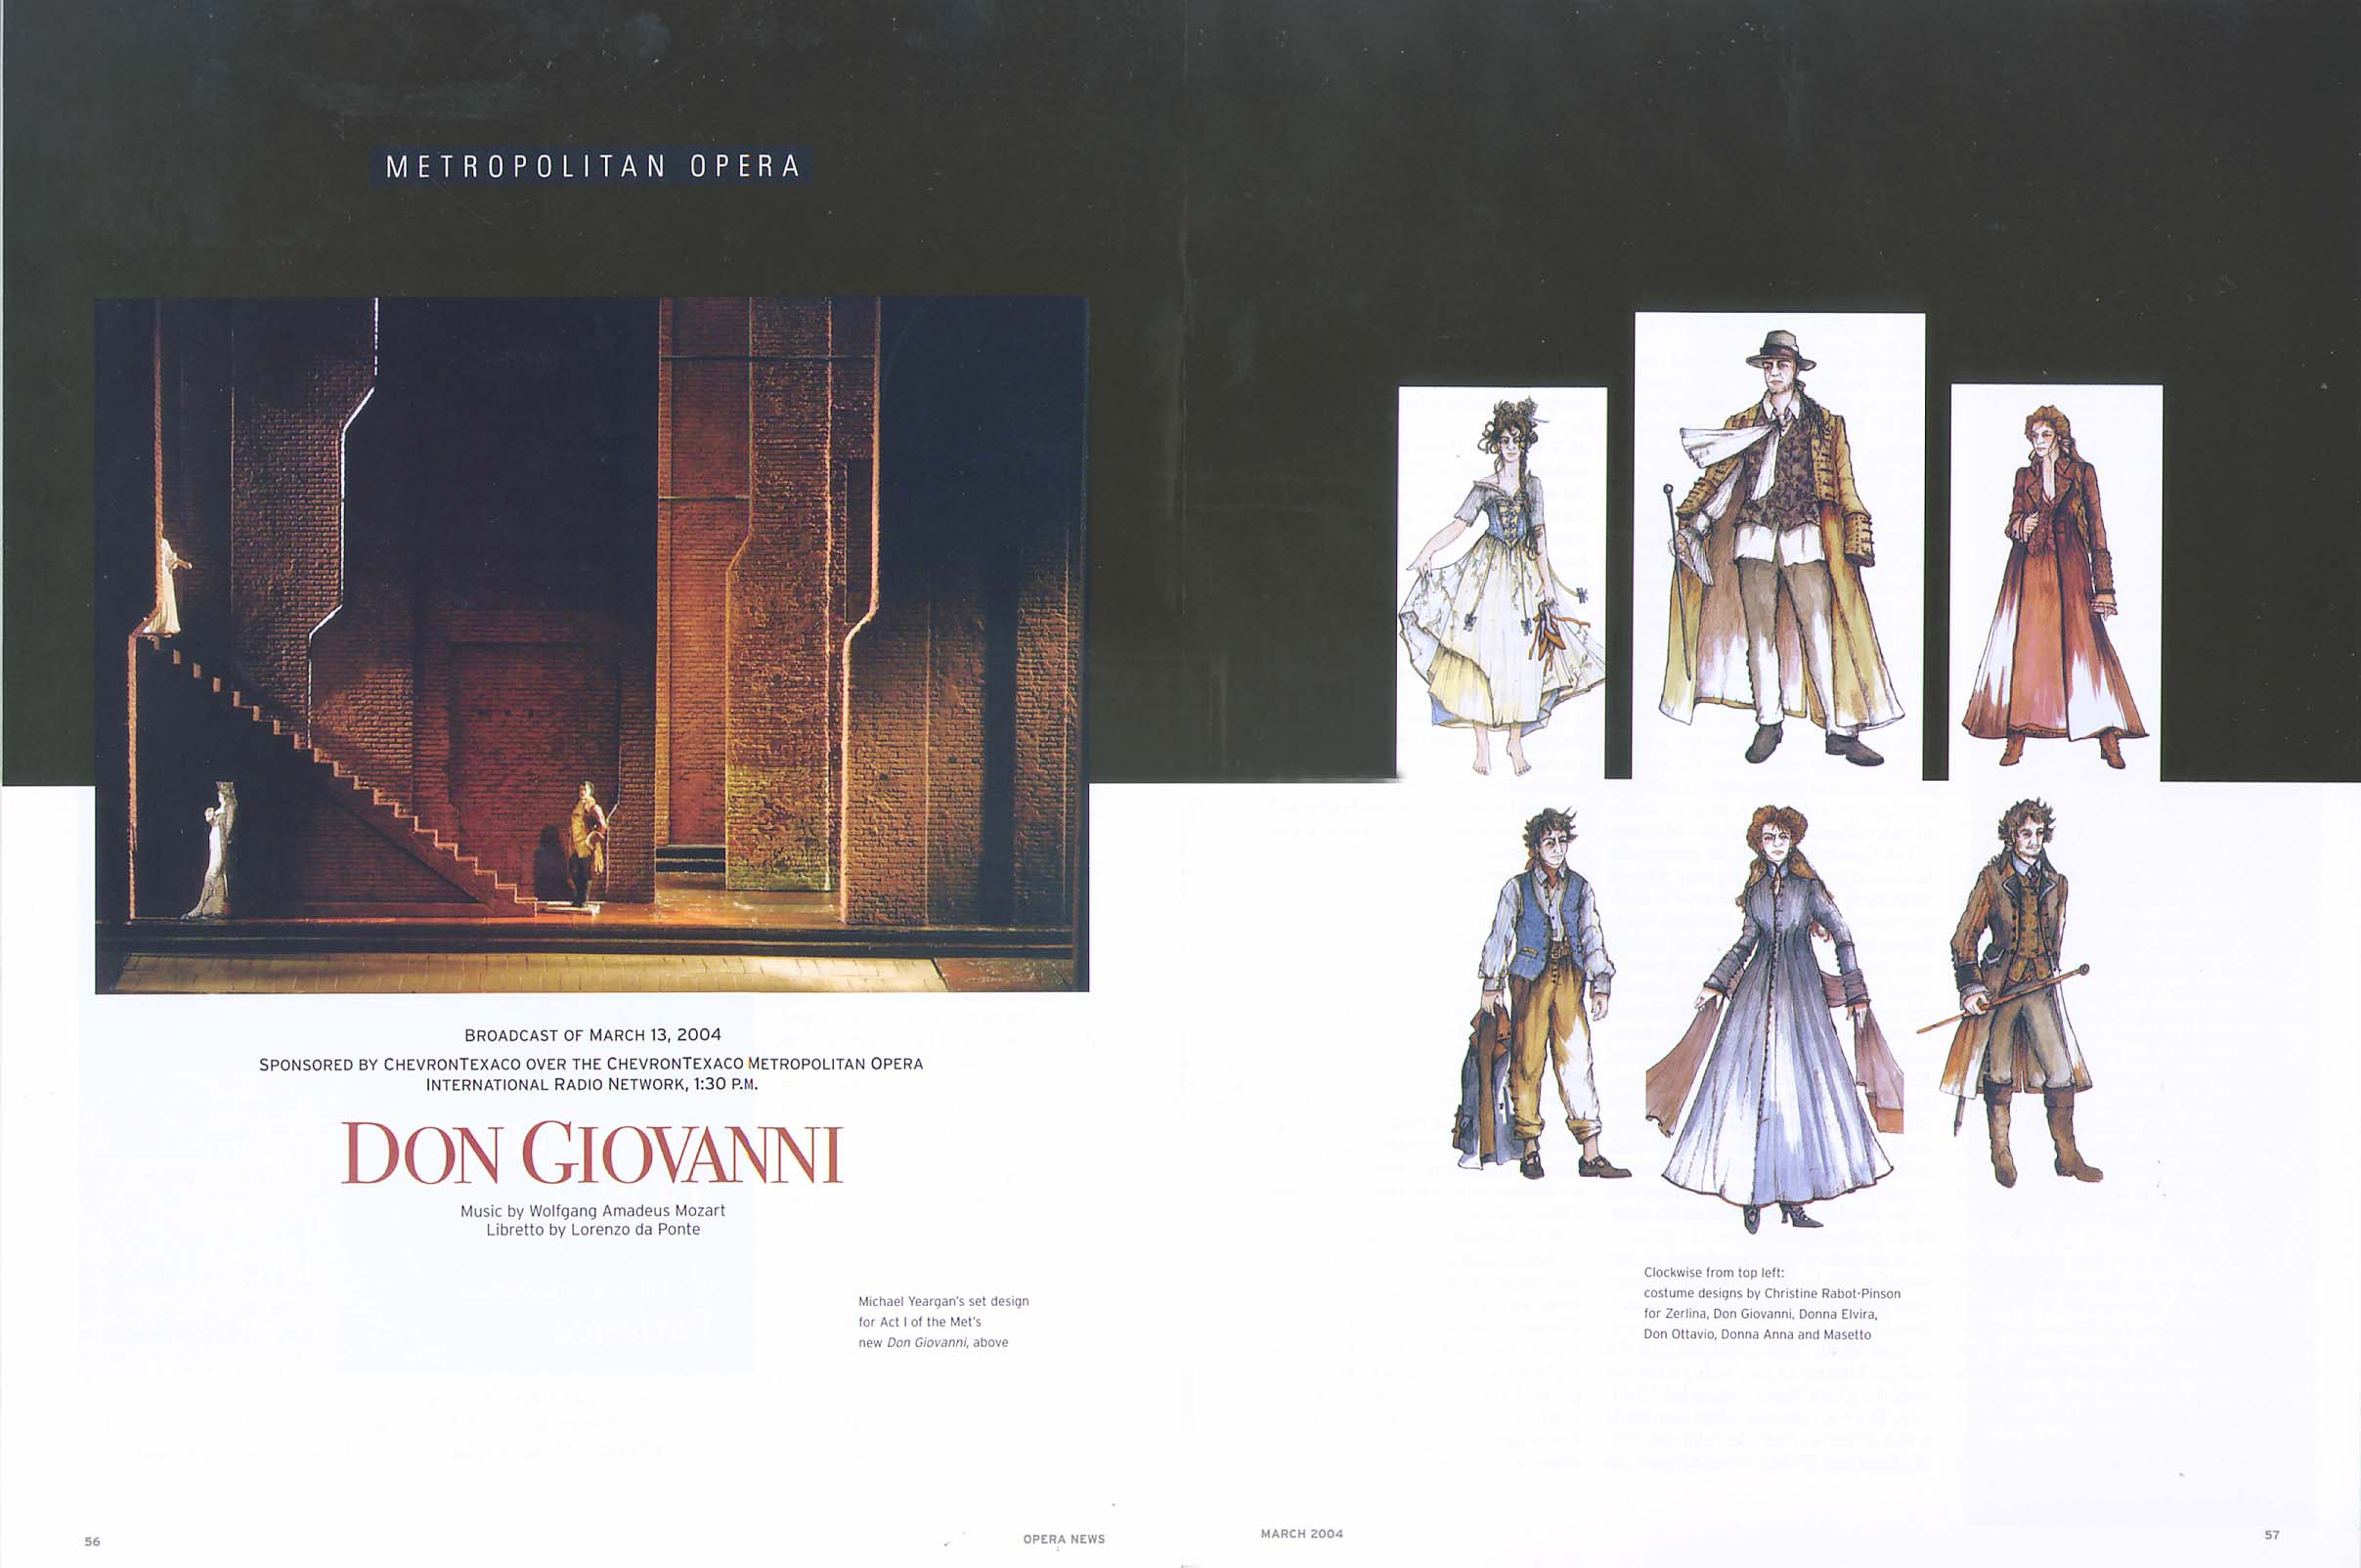 DON GIOVANNI @  |  |